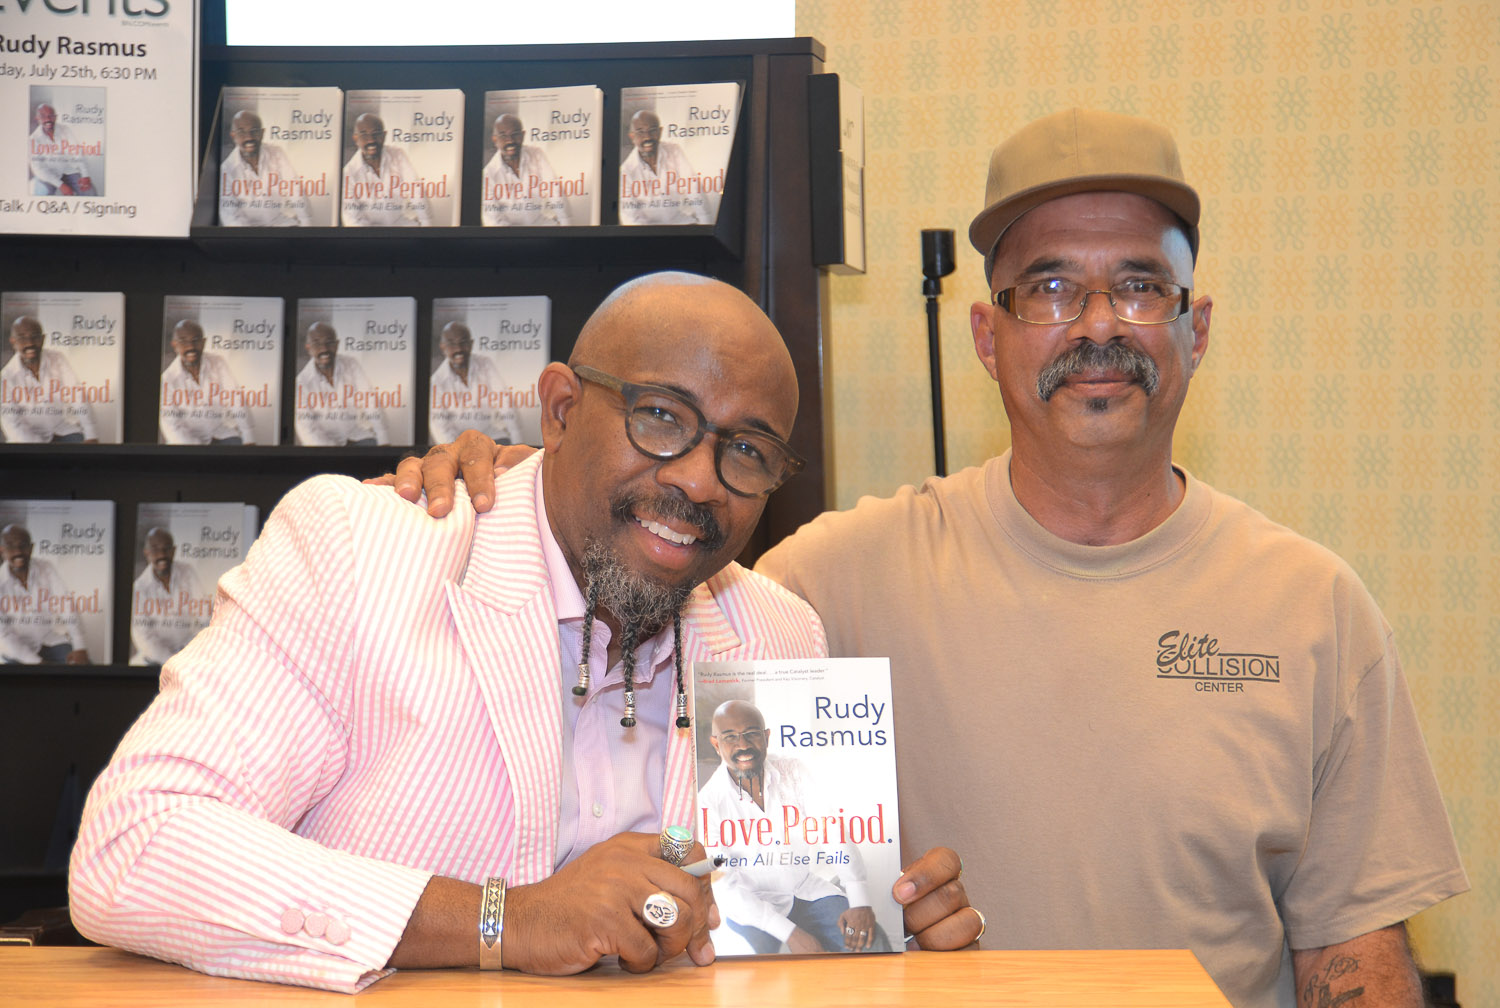 Paster Rudy book signing -0366.jpg